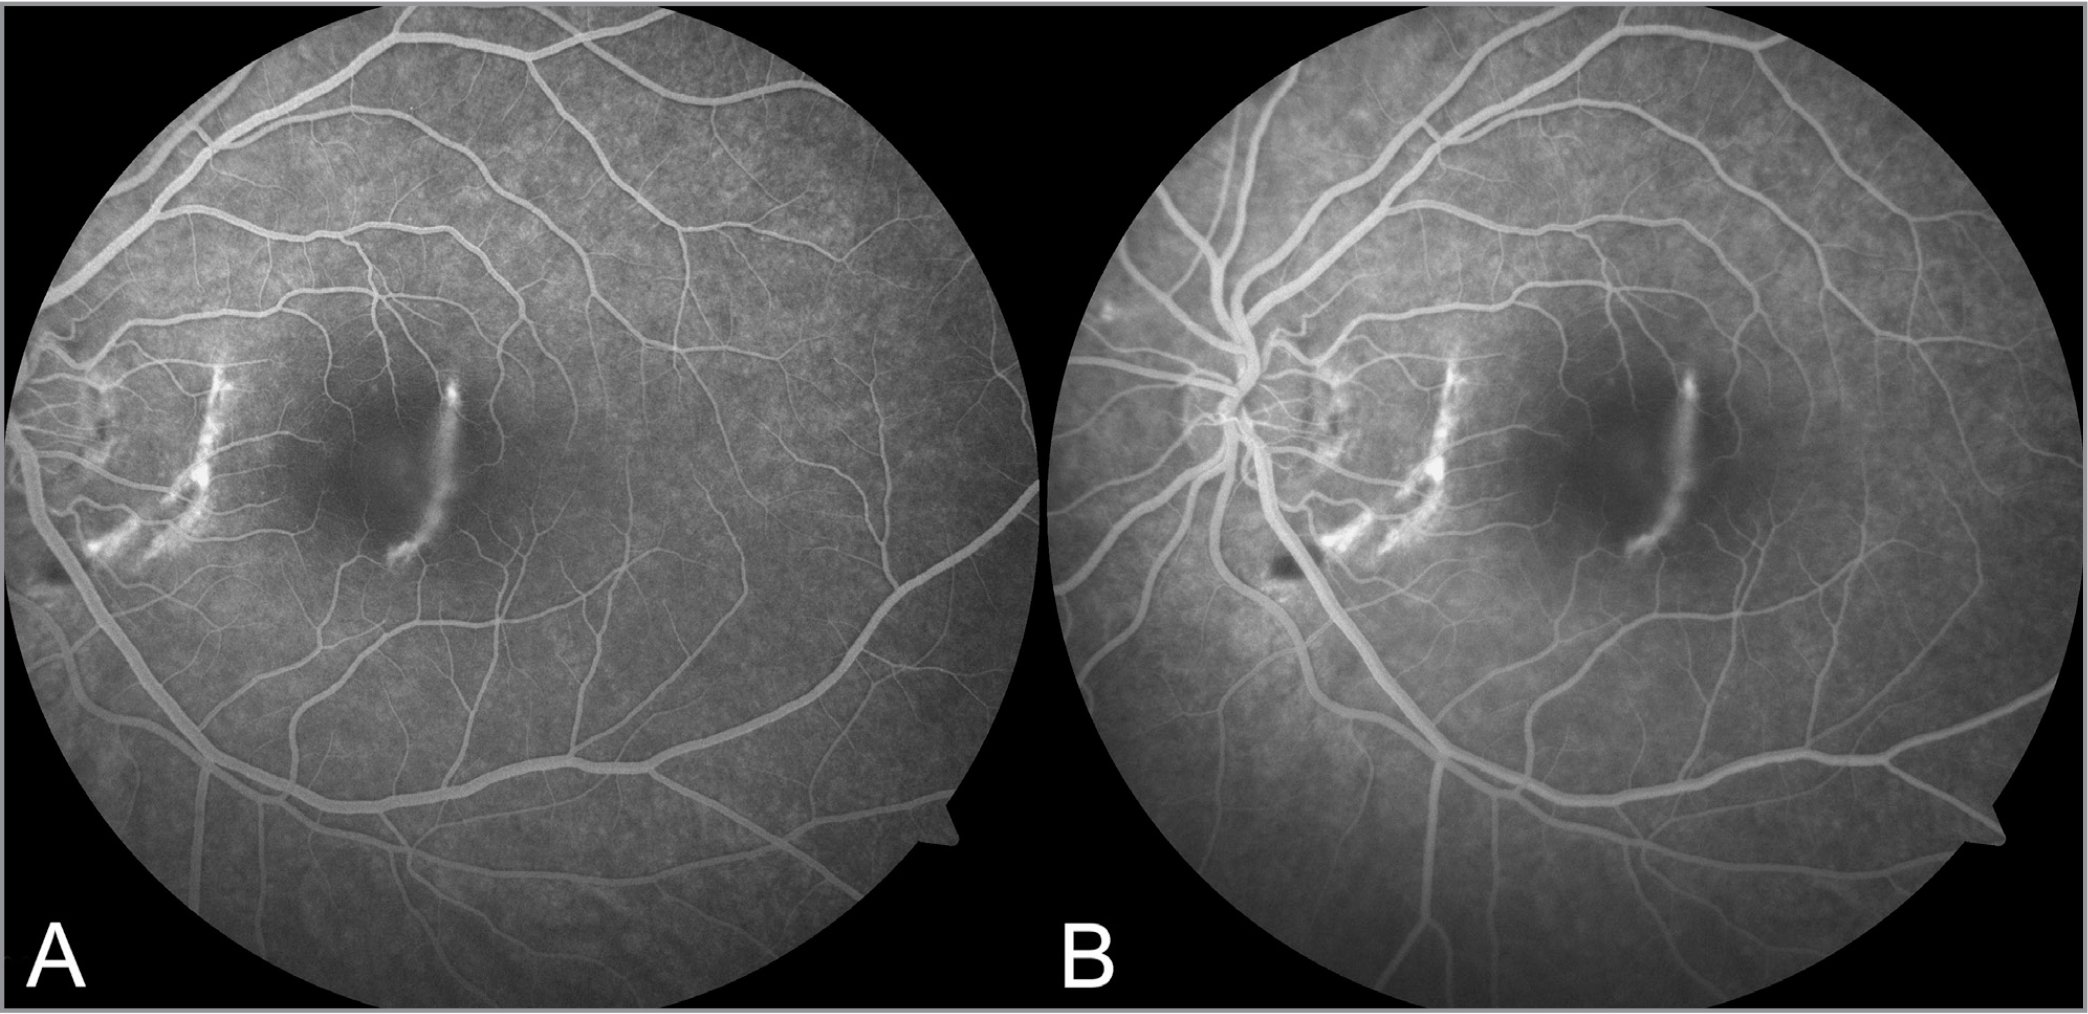 Late arteriovenous (A: 30 seconds) and recirculation (B: 1 minute and 38 seconds) phase fluorescein angiography of the left eye at presentation show crescentic areas of hyperfluorescent staining corresponding to choroidal rupture. There is minimal dye leakage into the subretinal space overlying the nonconforming focal choroidal excavation.